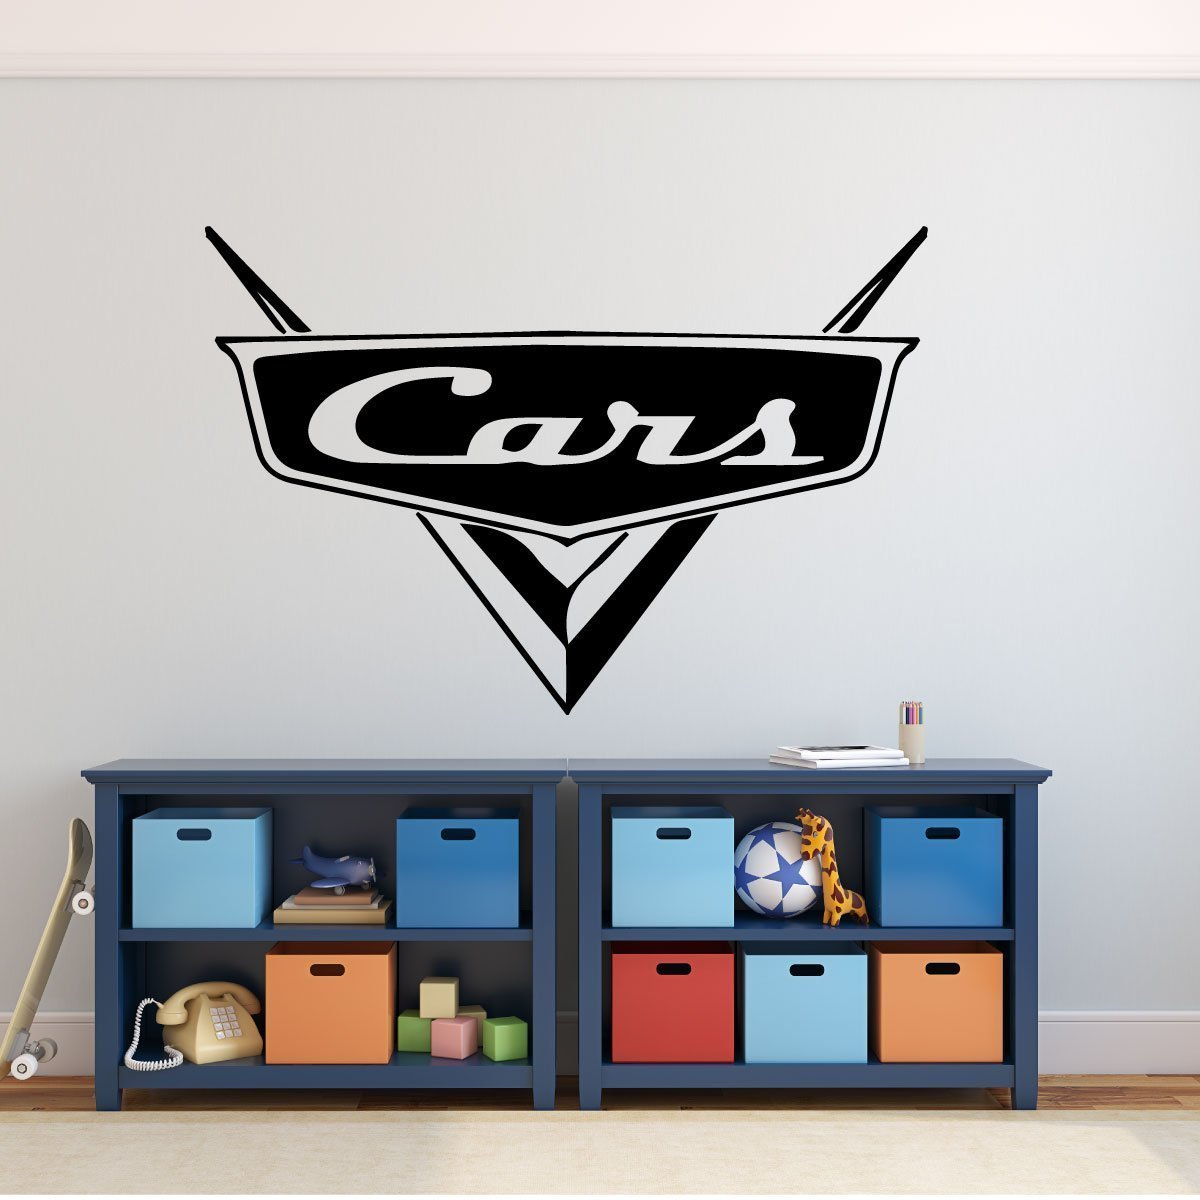 Disney Pixar Cars - Personalized Cars Emblem Wall Decal for Man Cave or Garage